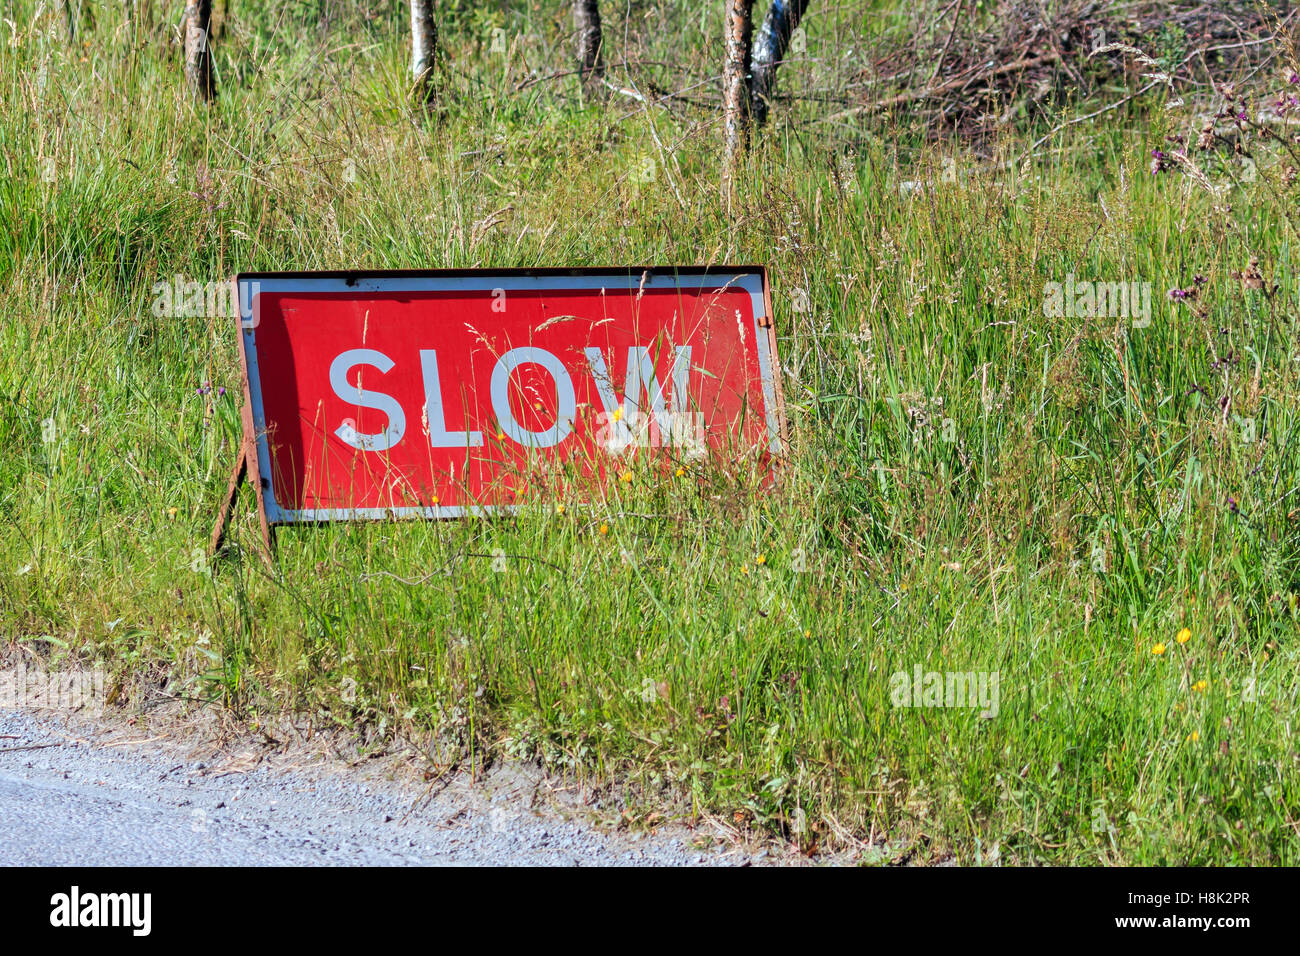 Red road warning sign advising slow speed - Stock Image